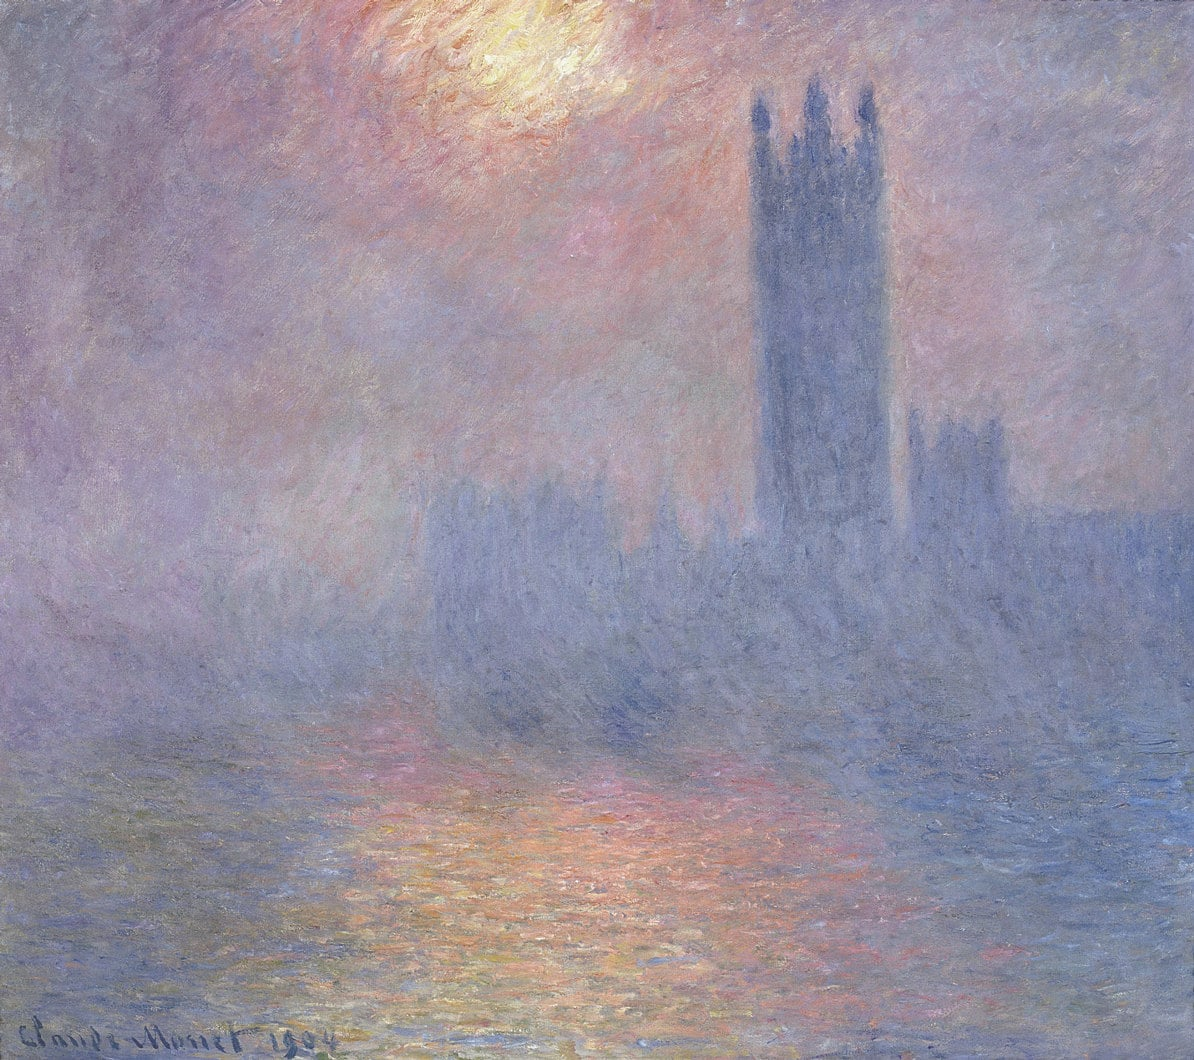 Impressionists and Post-Impressionists: The Birth of Modern Art. Masterpieces from the Musée d'Orsay